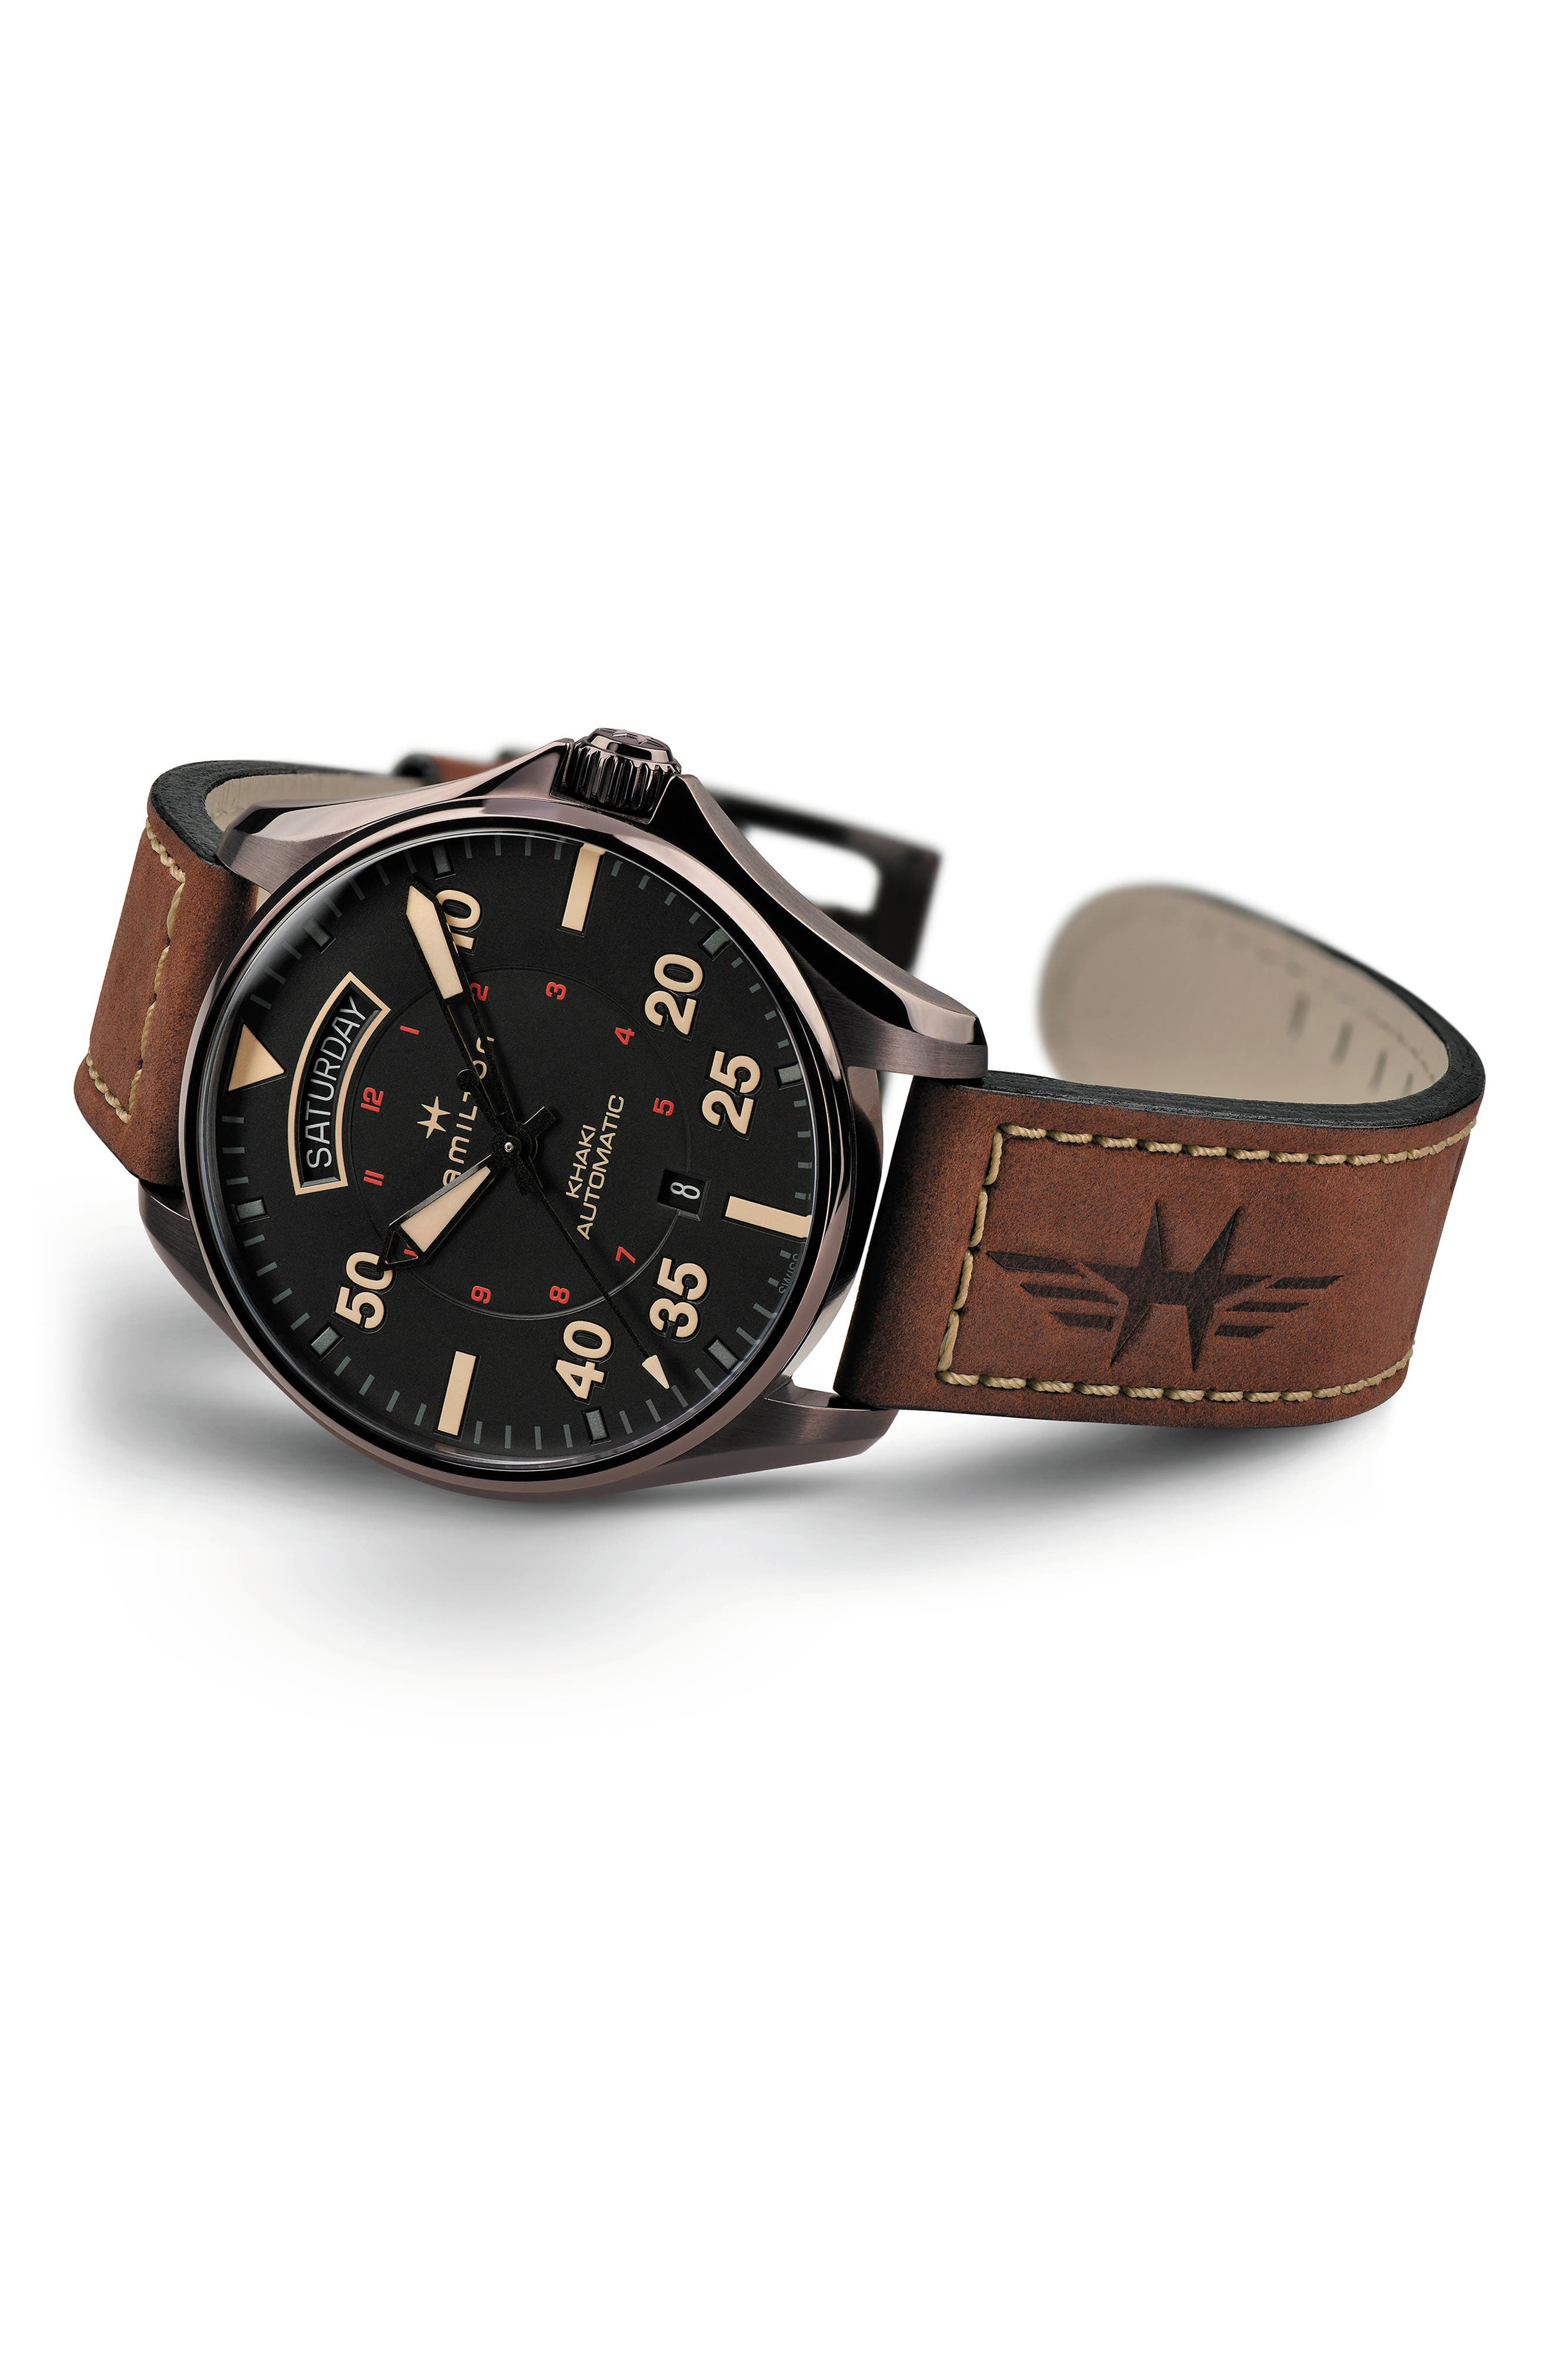 HAMILTON, Khaki Aviation Automatic Leather Strap Watch, 42mm, Alternate thumbnail 2, color, BROWN/ BLACK